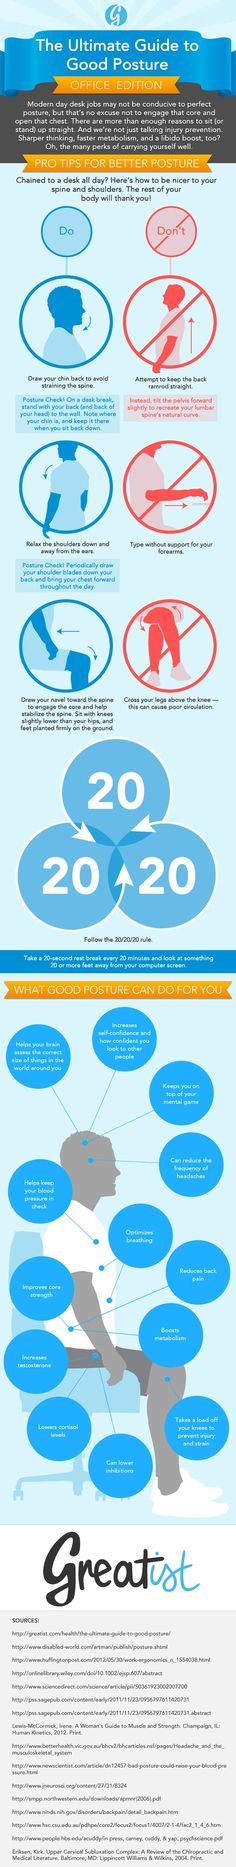 The Ultimate Guide to Good Posture: Office Edition      Modern day desk jobs may not be conducive to perfect posture, but that's no excuse not to engage that core and open that chest. There are more than enough reasons to sit (or stand) up straight. And we're not just talking injury prevention. Sharper thinking, faster metabolism, and a libido boost, too?